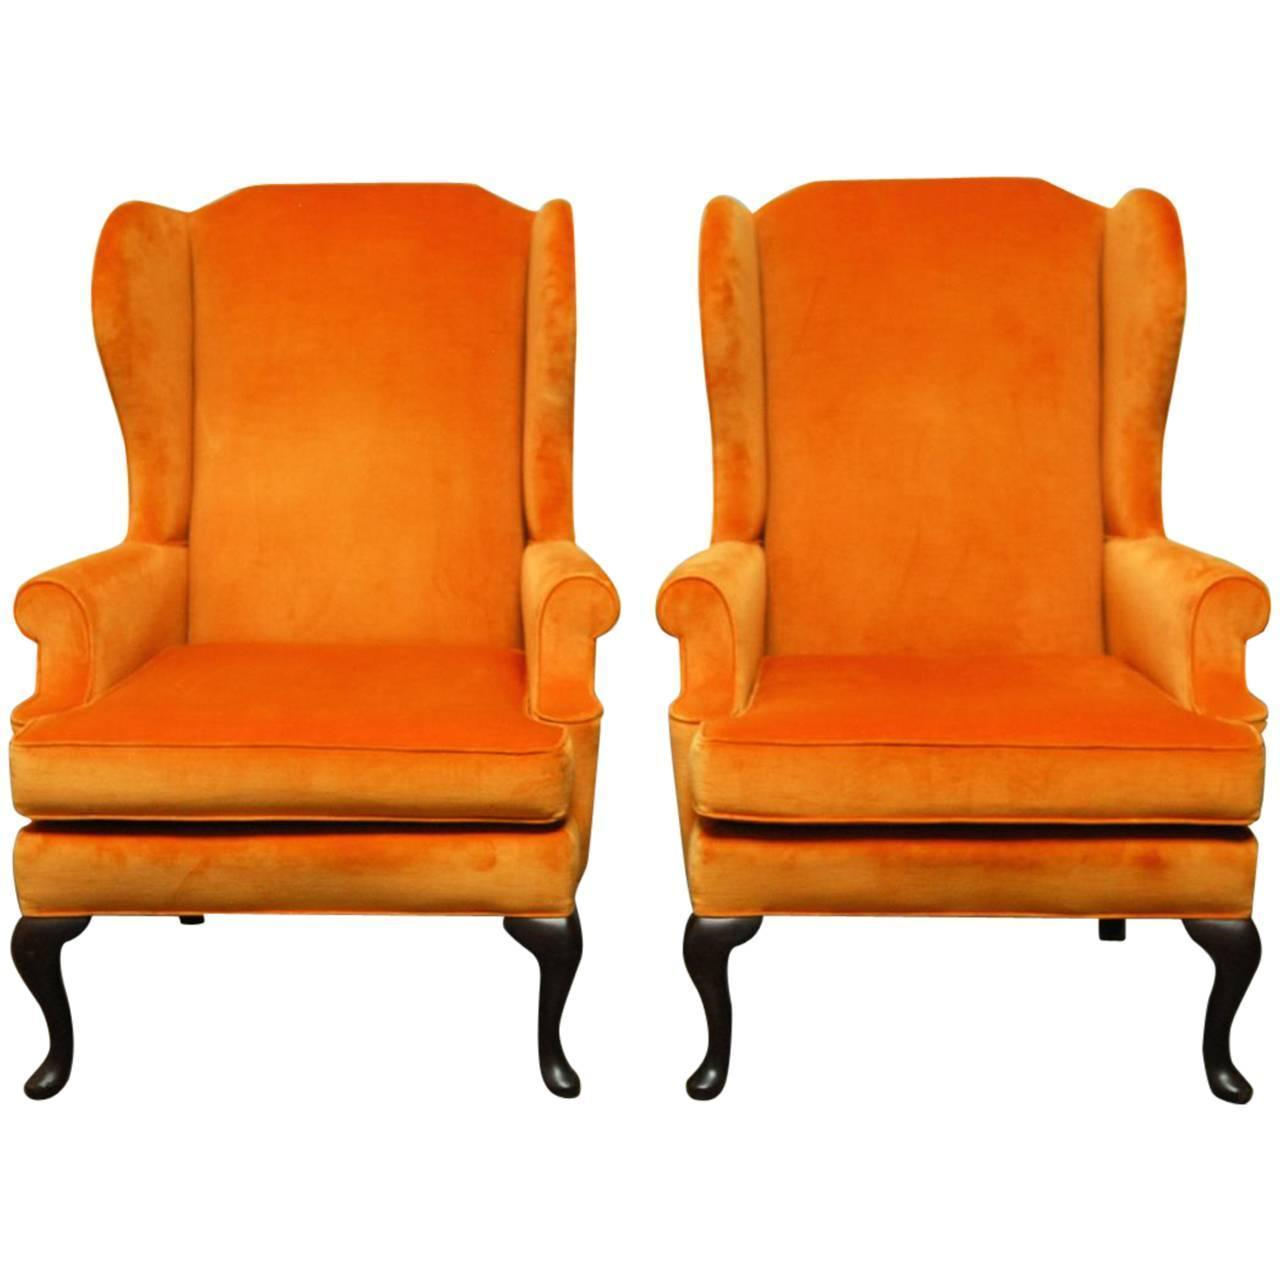 Queen Anne Style Orange Wingback Chairs   A Pair